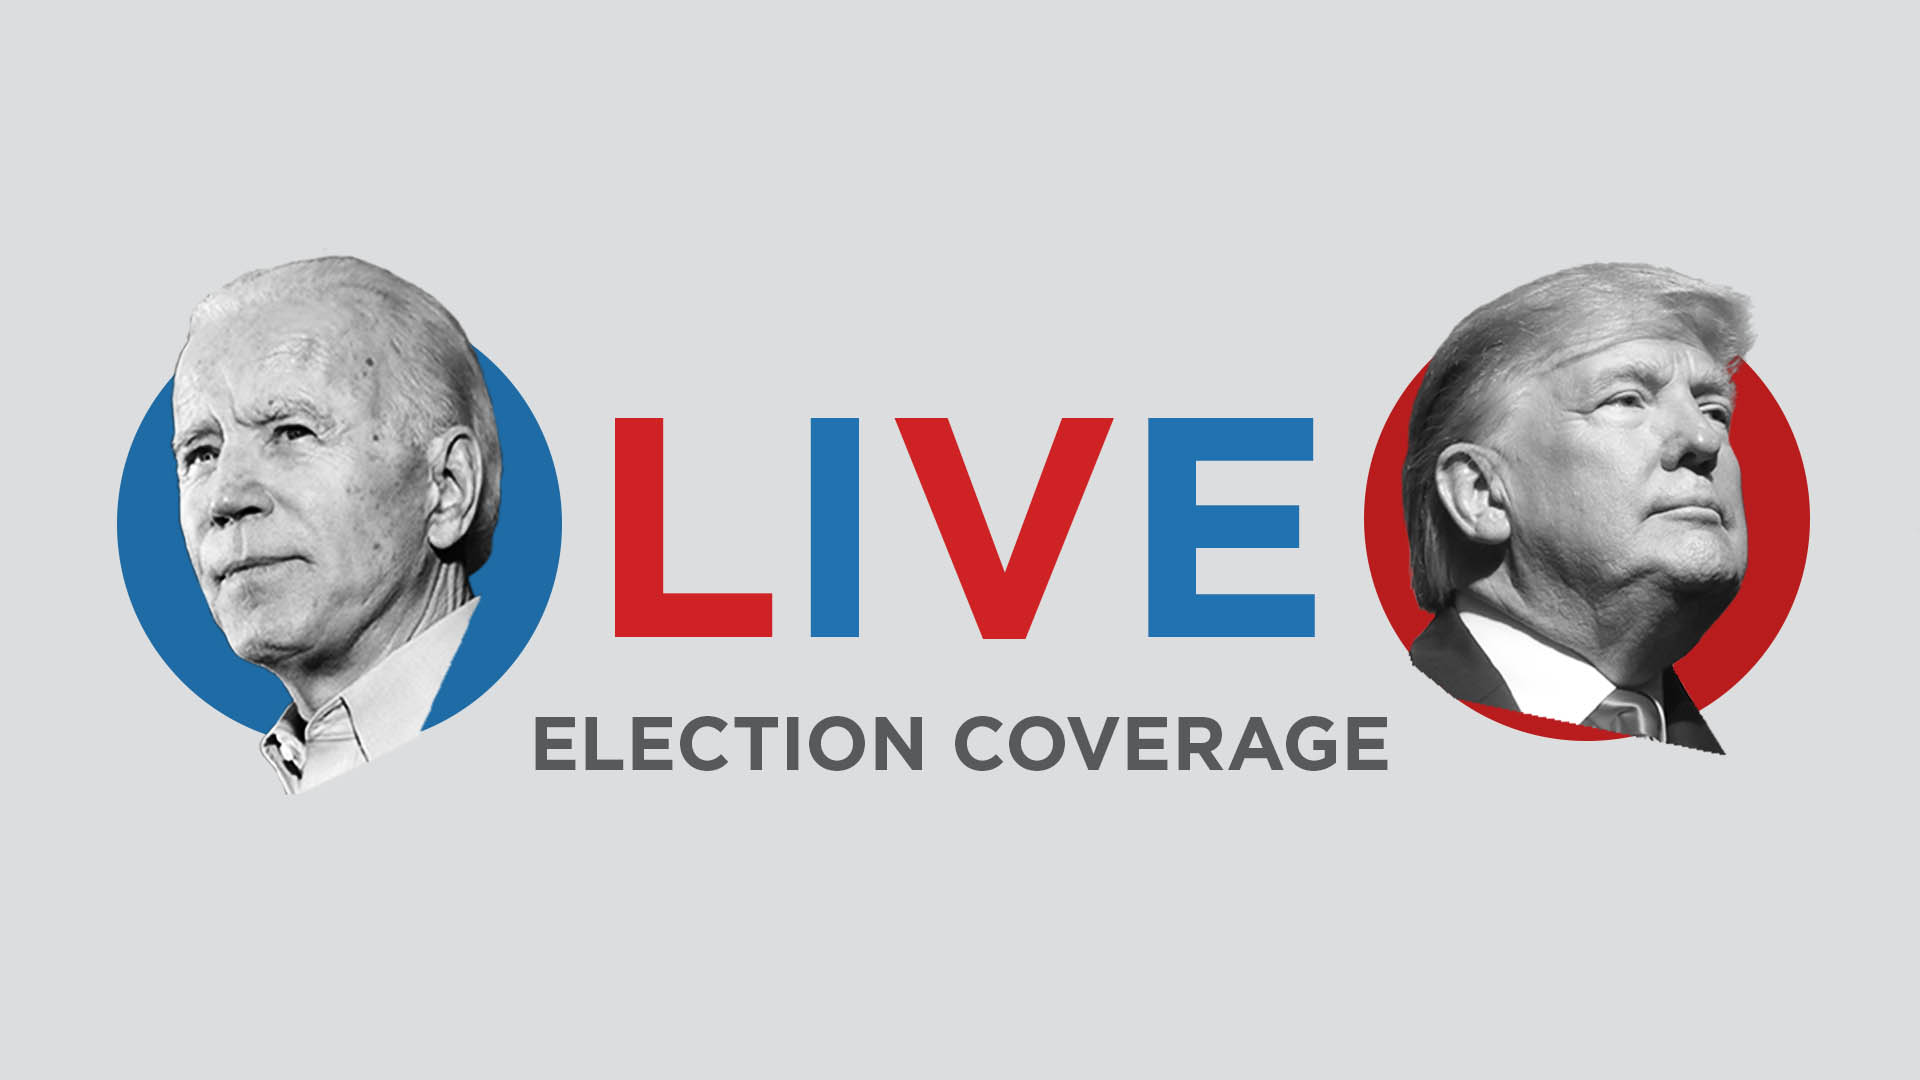 Live coverage of election online betting we love betting follow your arrow